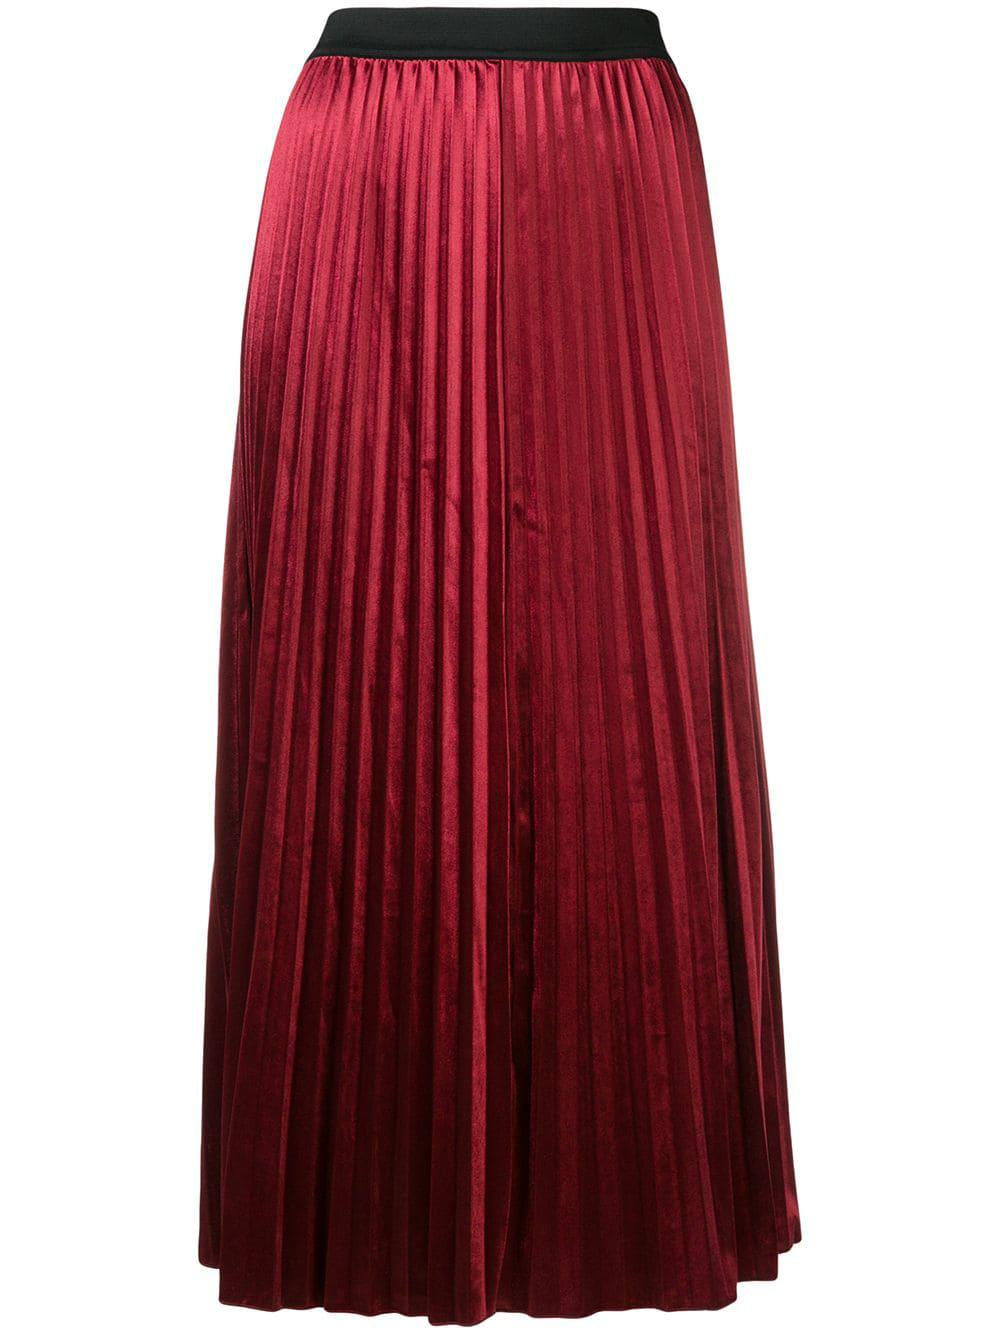 Dkny Pleated Maxi Skirt - Red